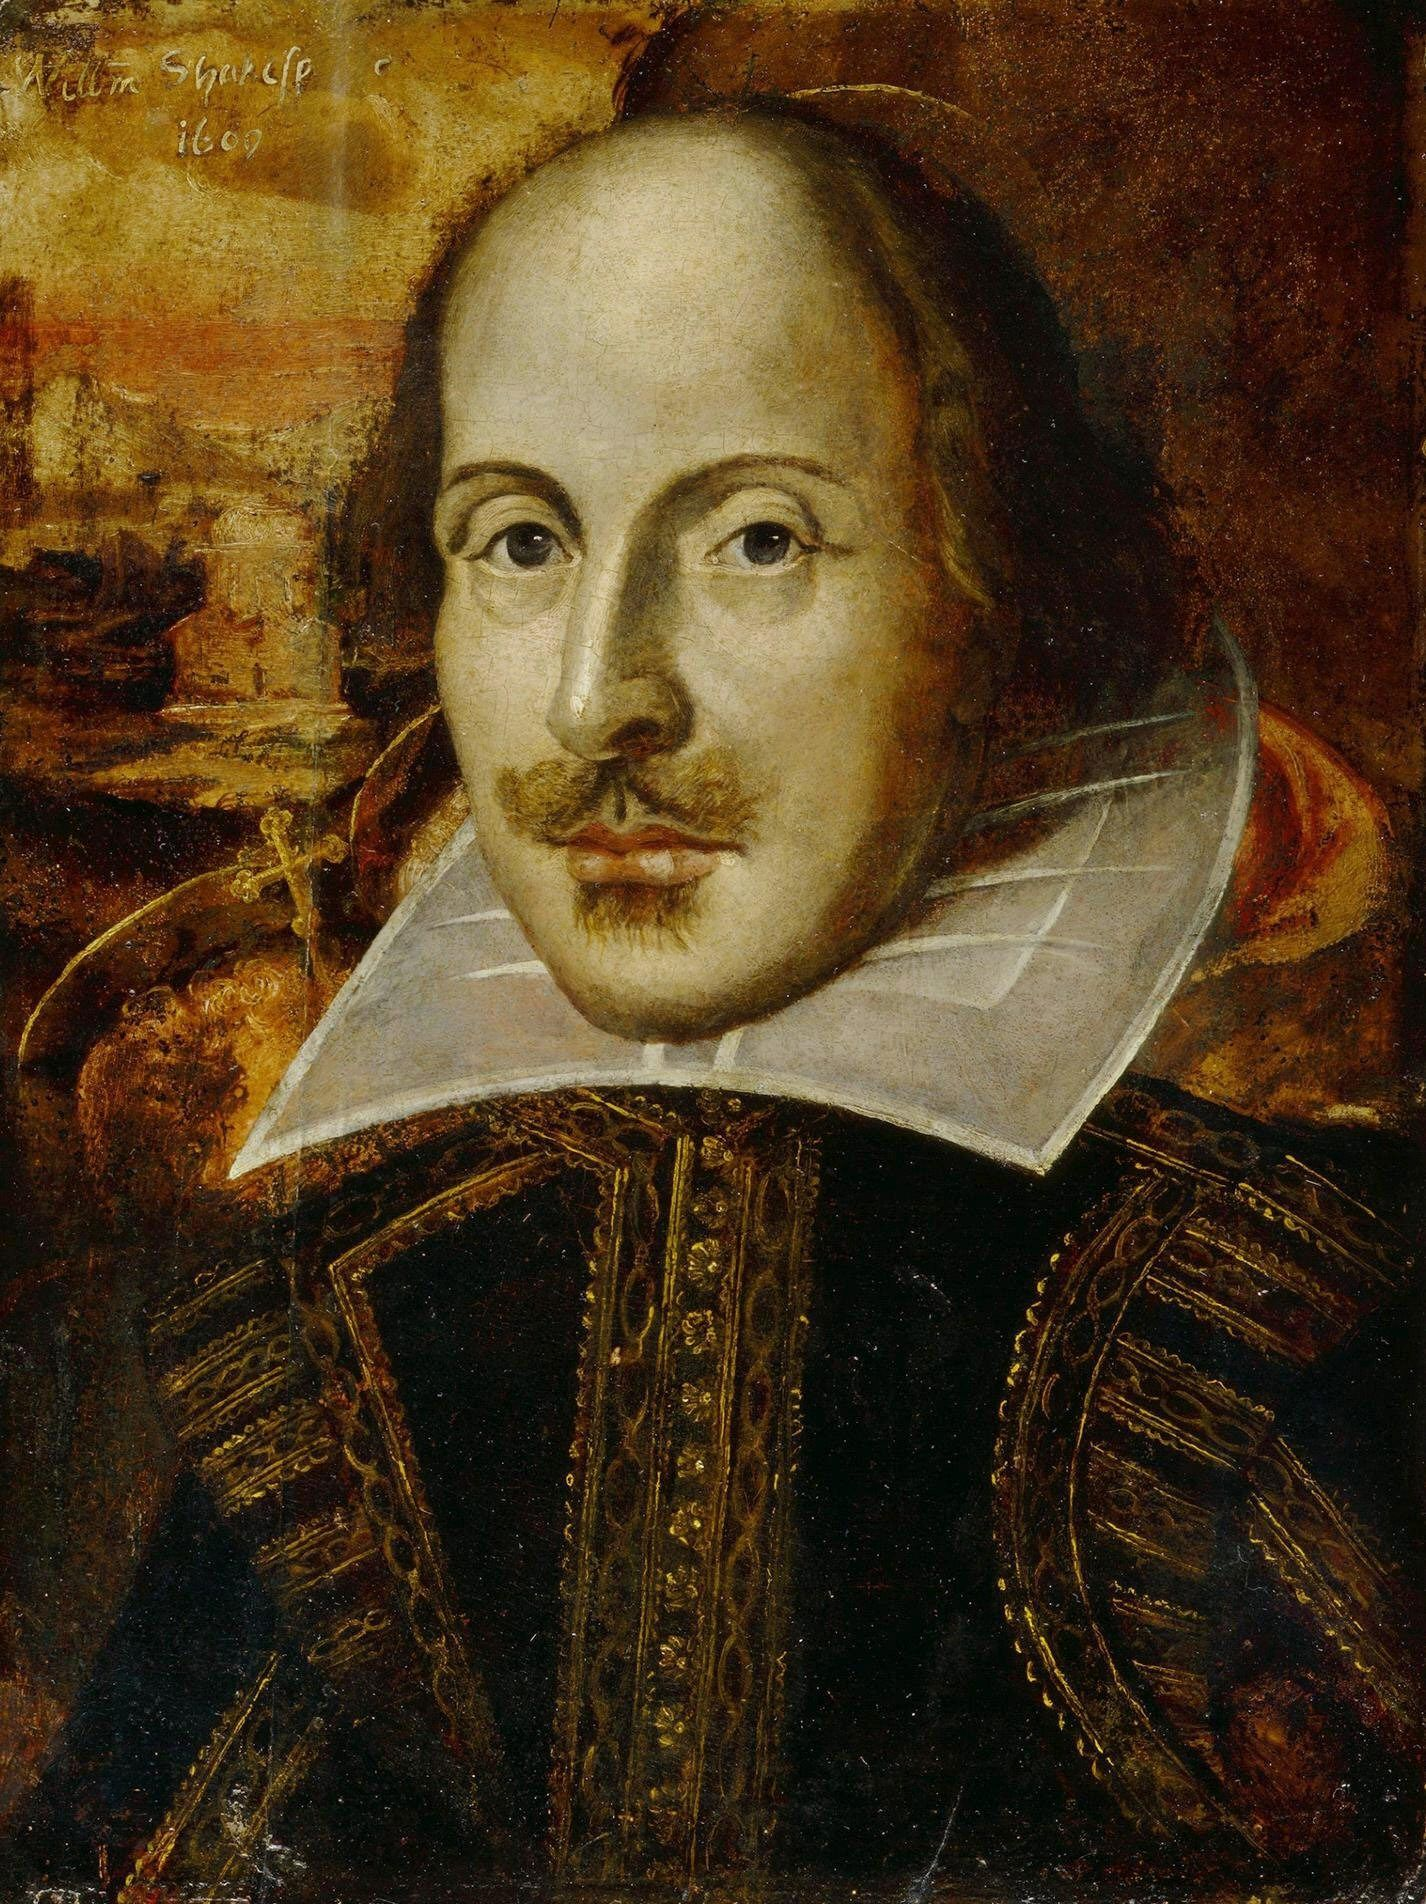 http://upload.wikimedia.org/wikipedia/commons/3/31/William_Shakespeare_1609.jpg